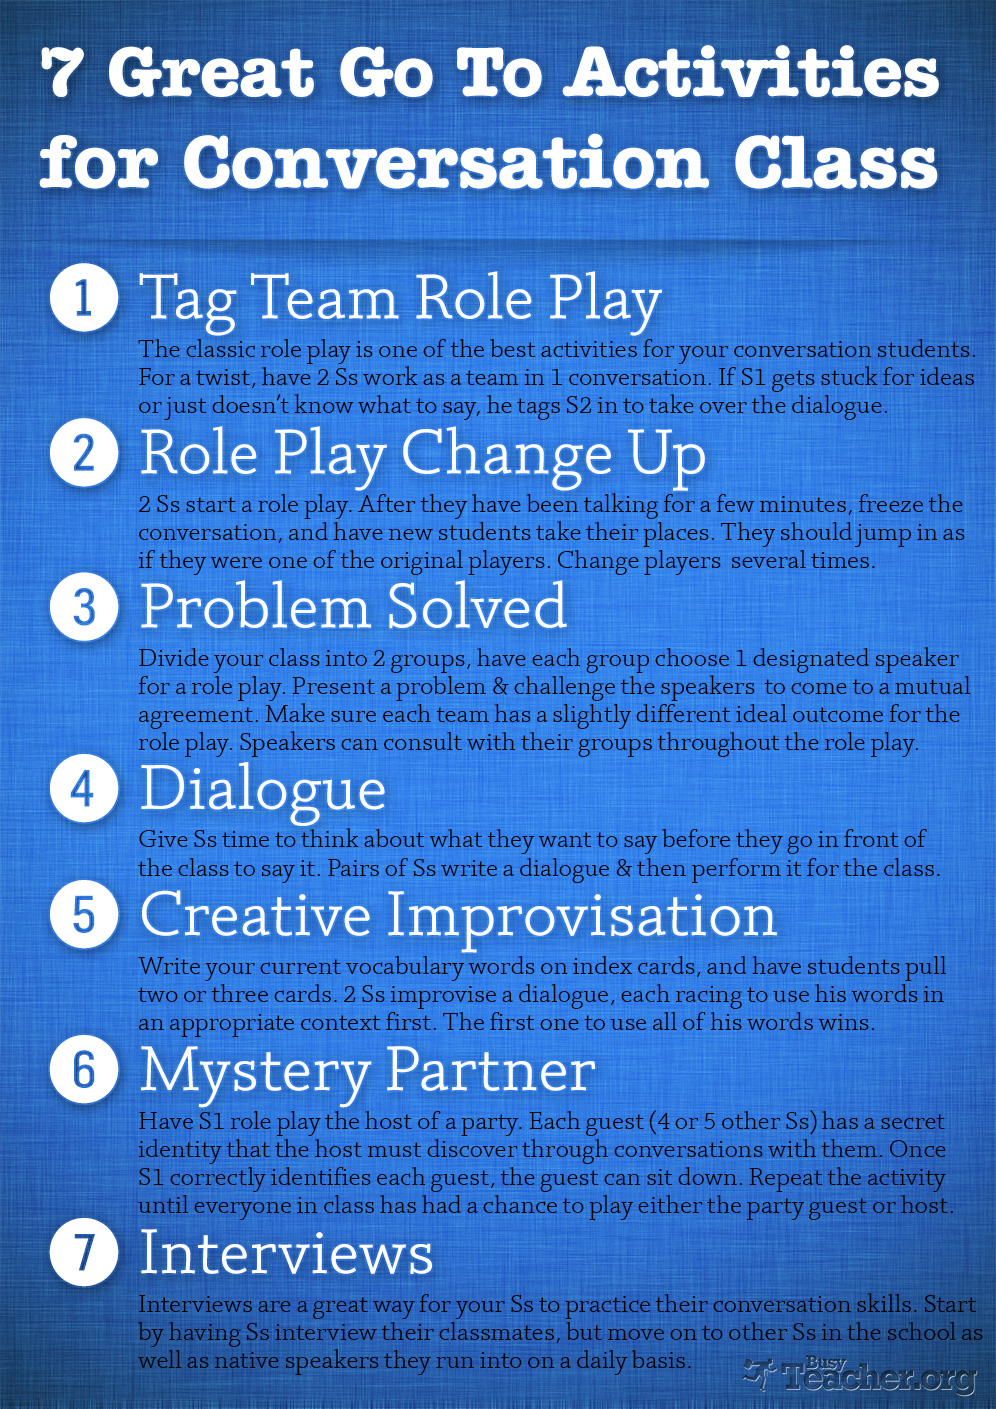 POSTER: 7 Great Go To Activities for Conversation Class